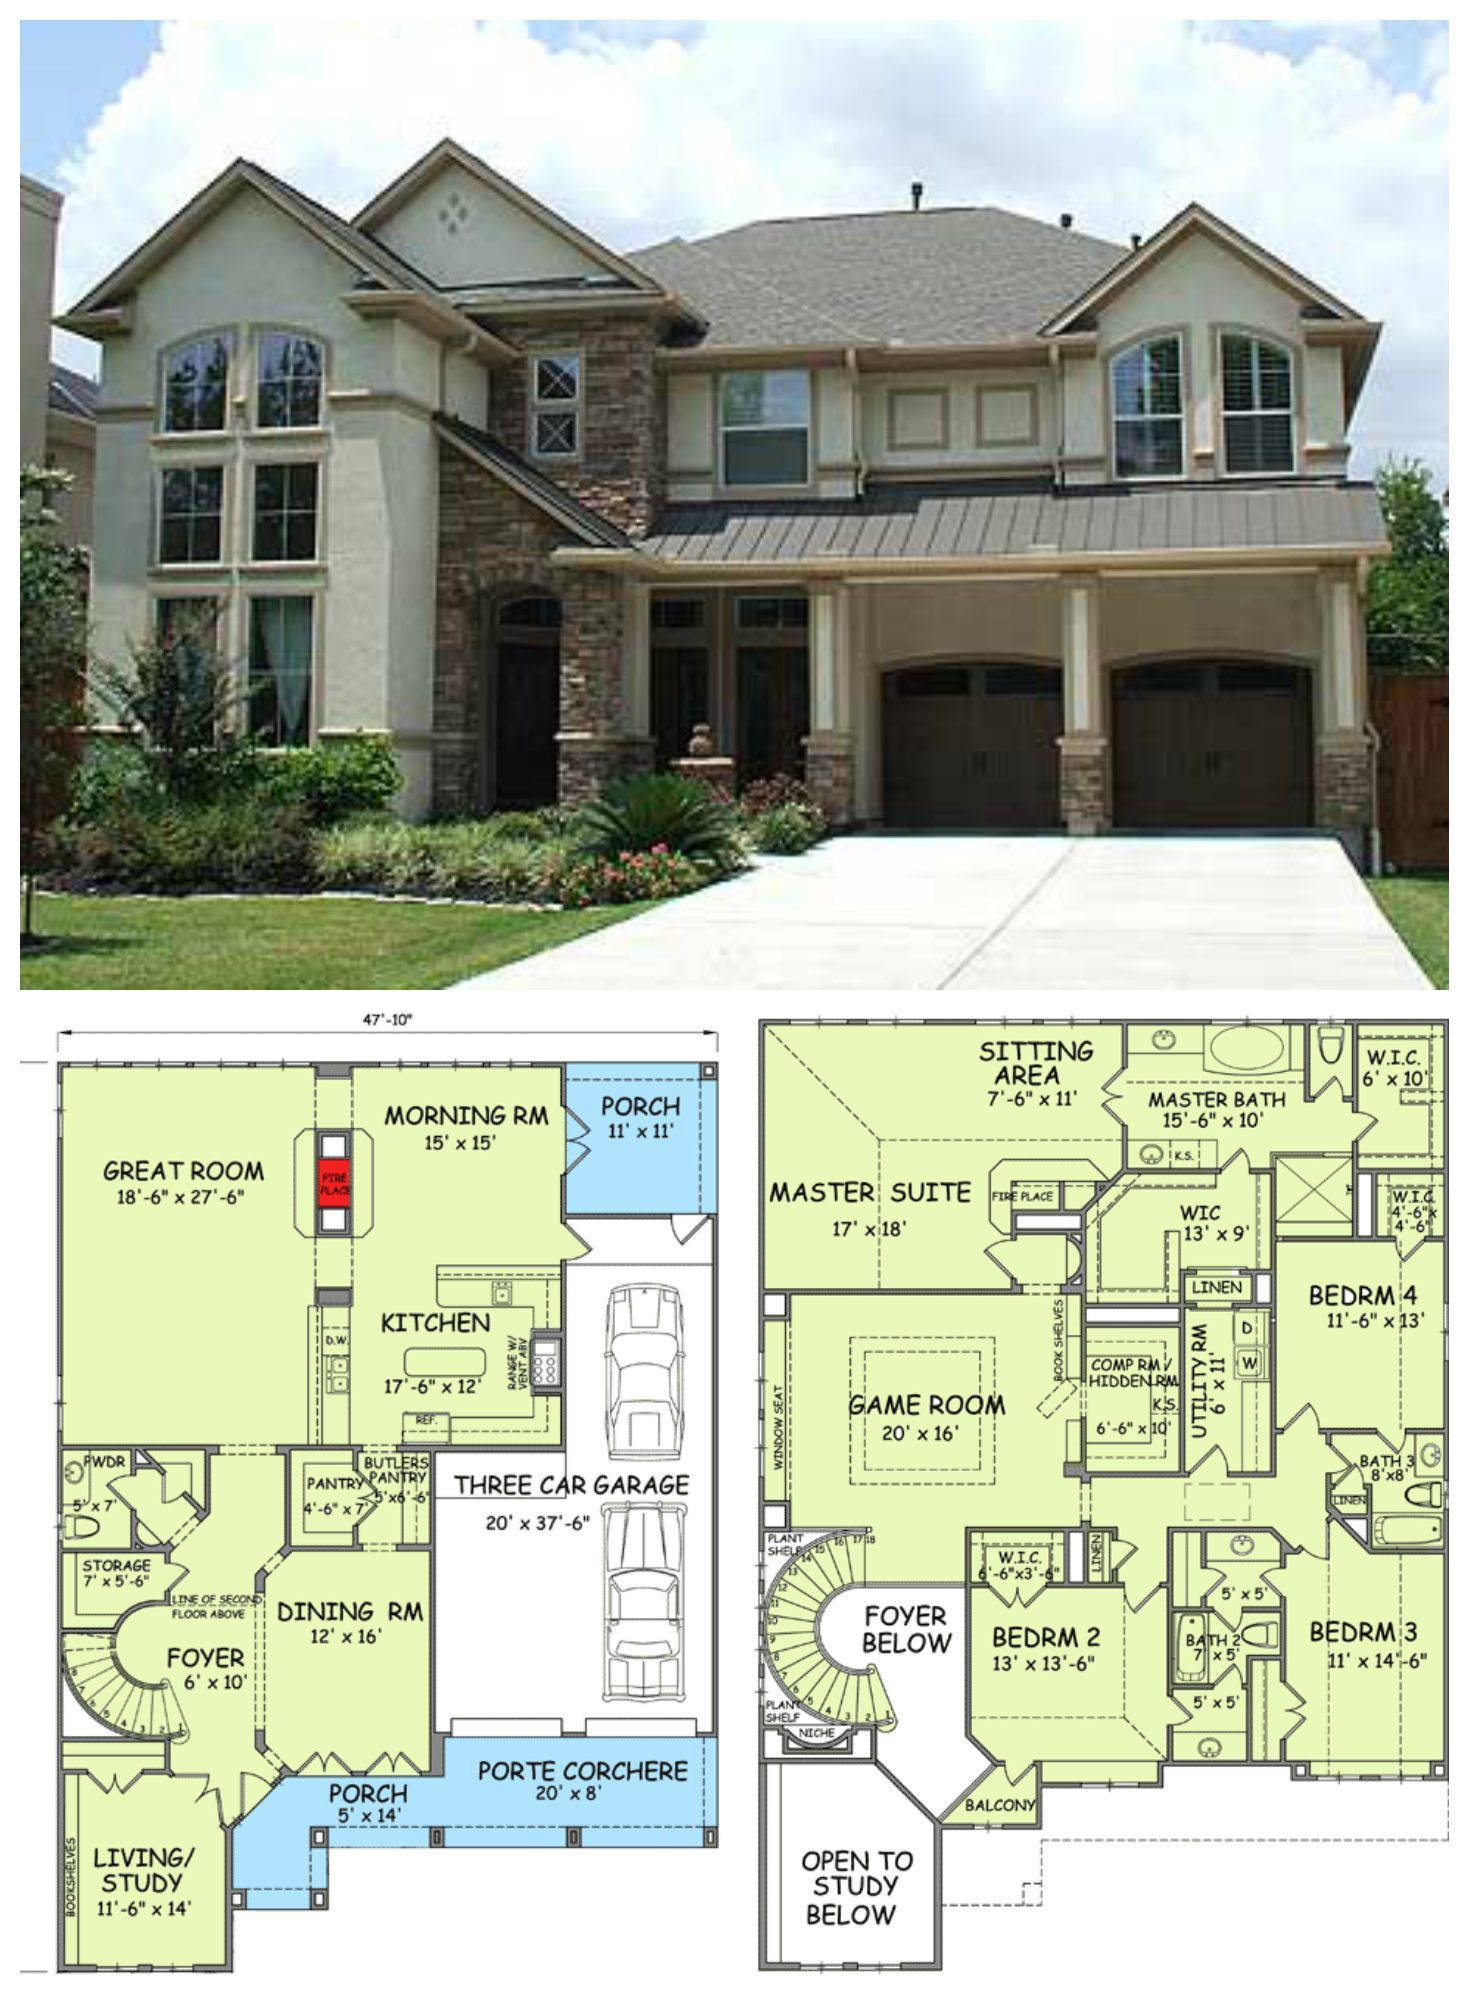 Floor Plan With Hidden Room Affordable House Plans Small Affordable House Plans House Plans